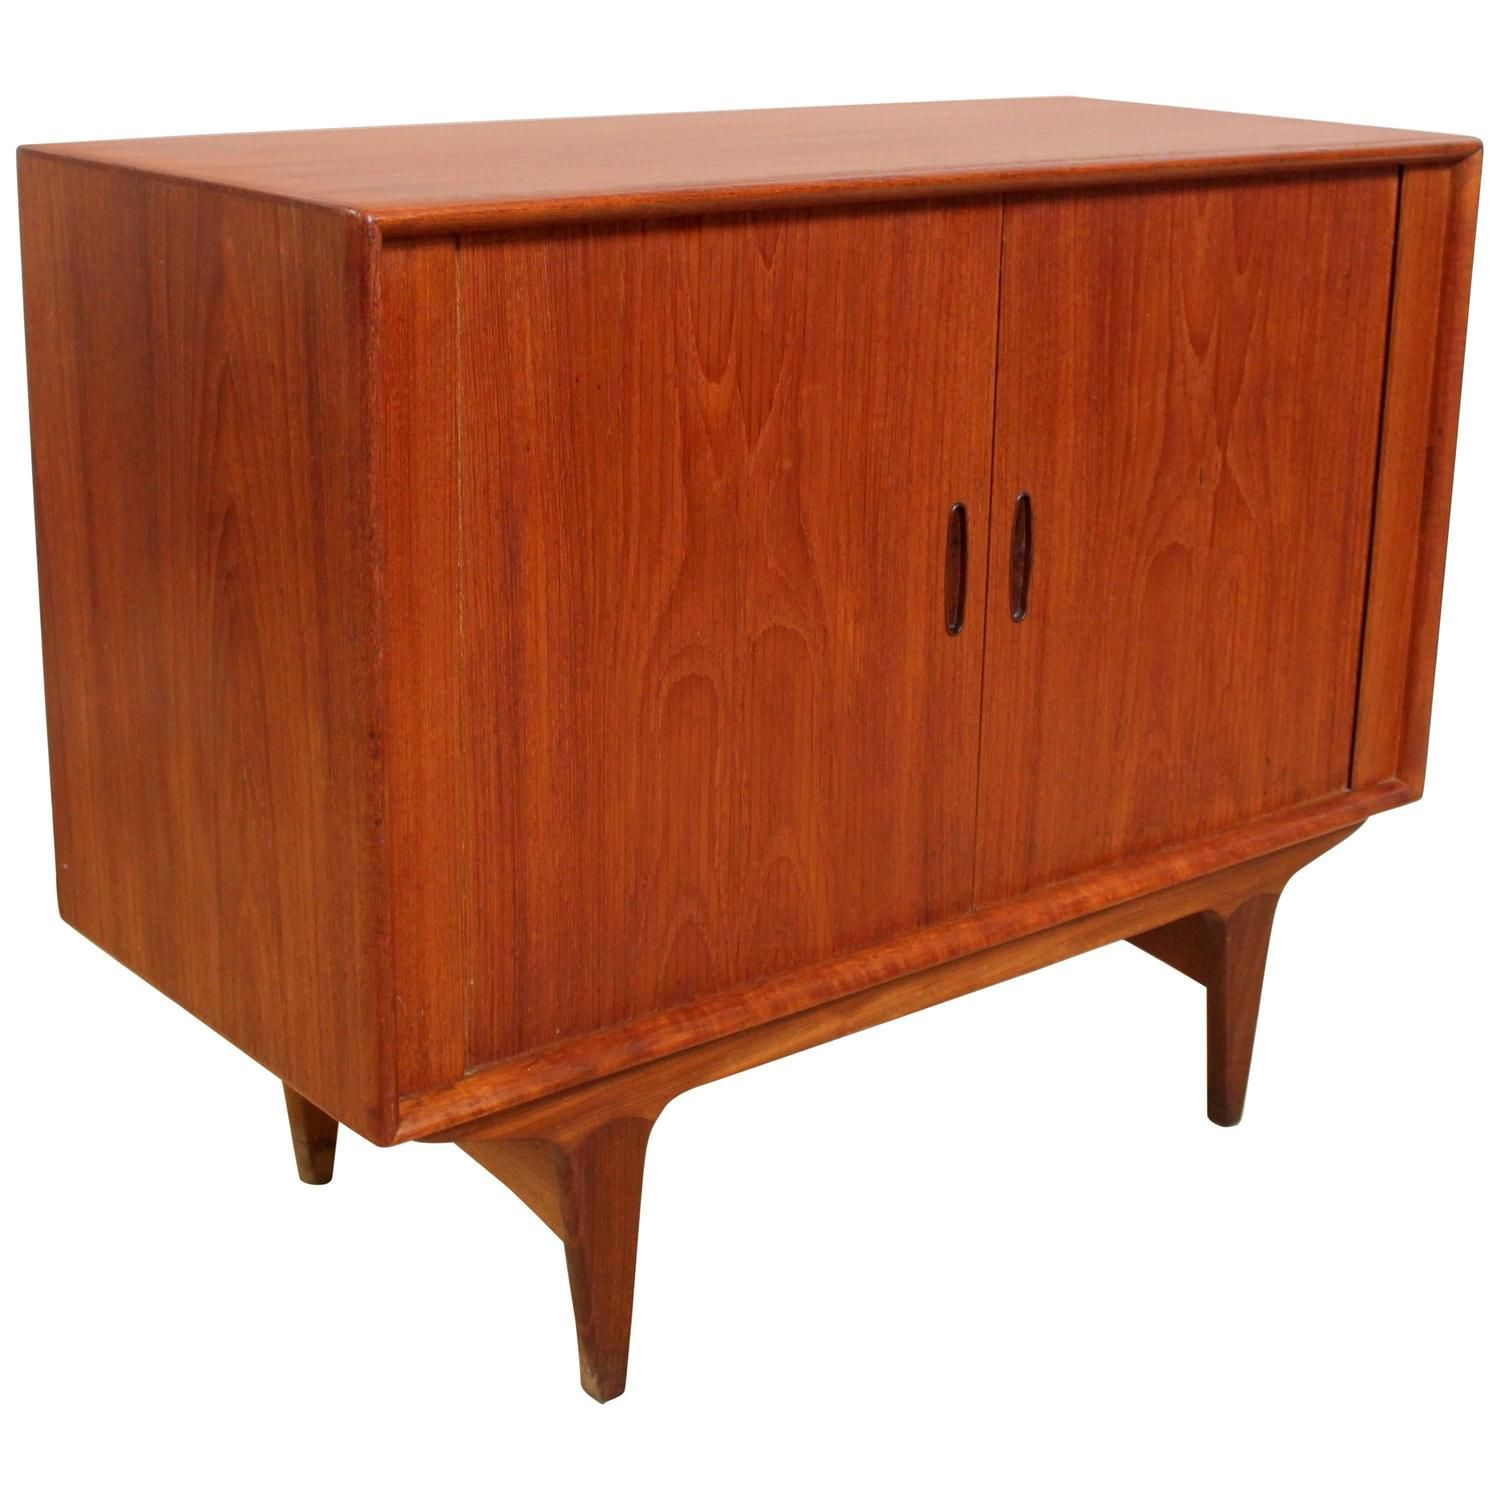 Danish Modern Teak Credenza With Tambour Doors